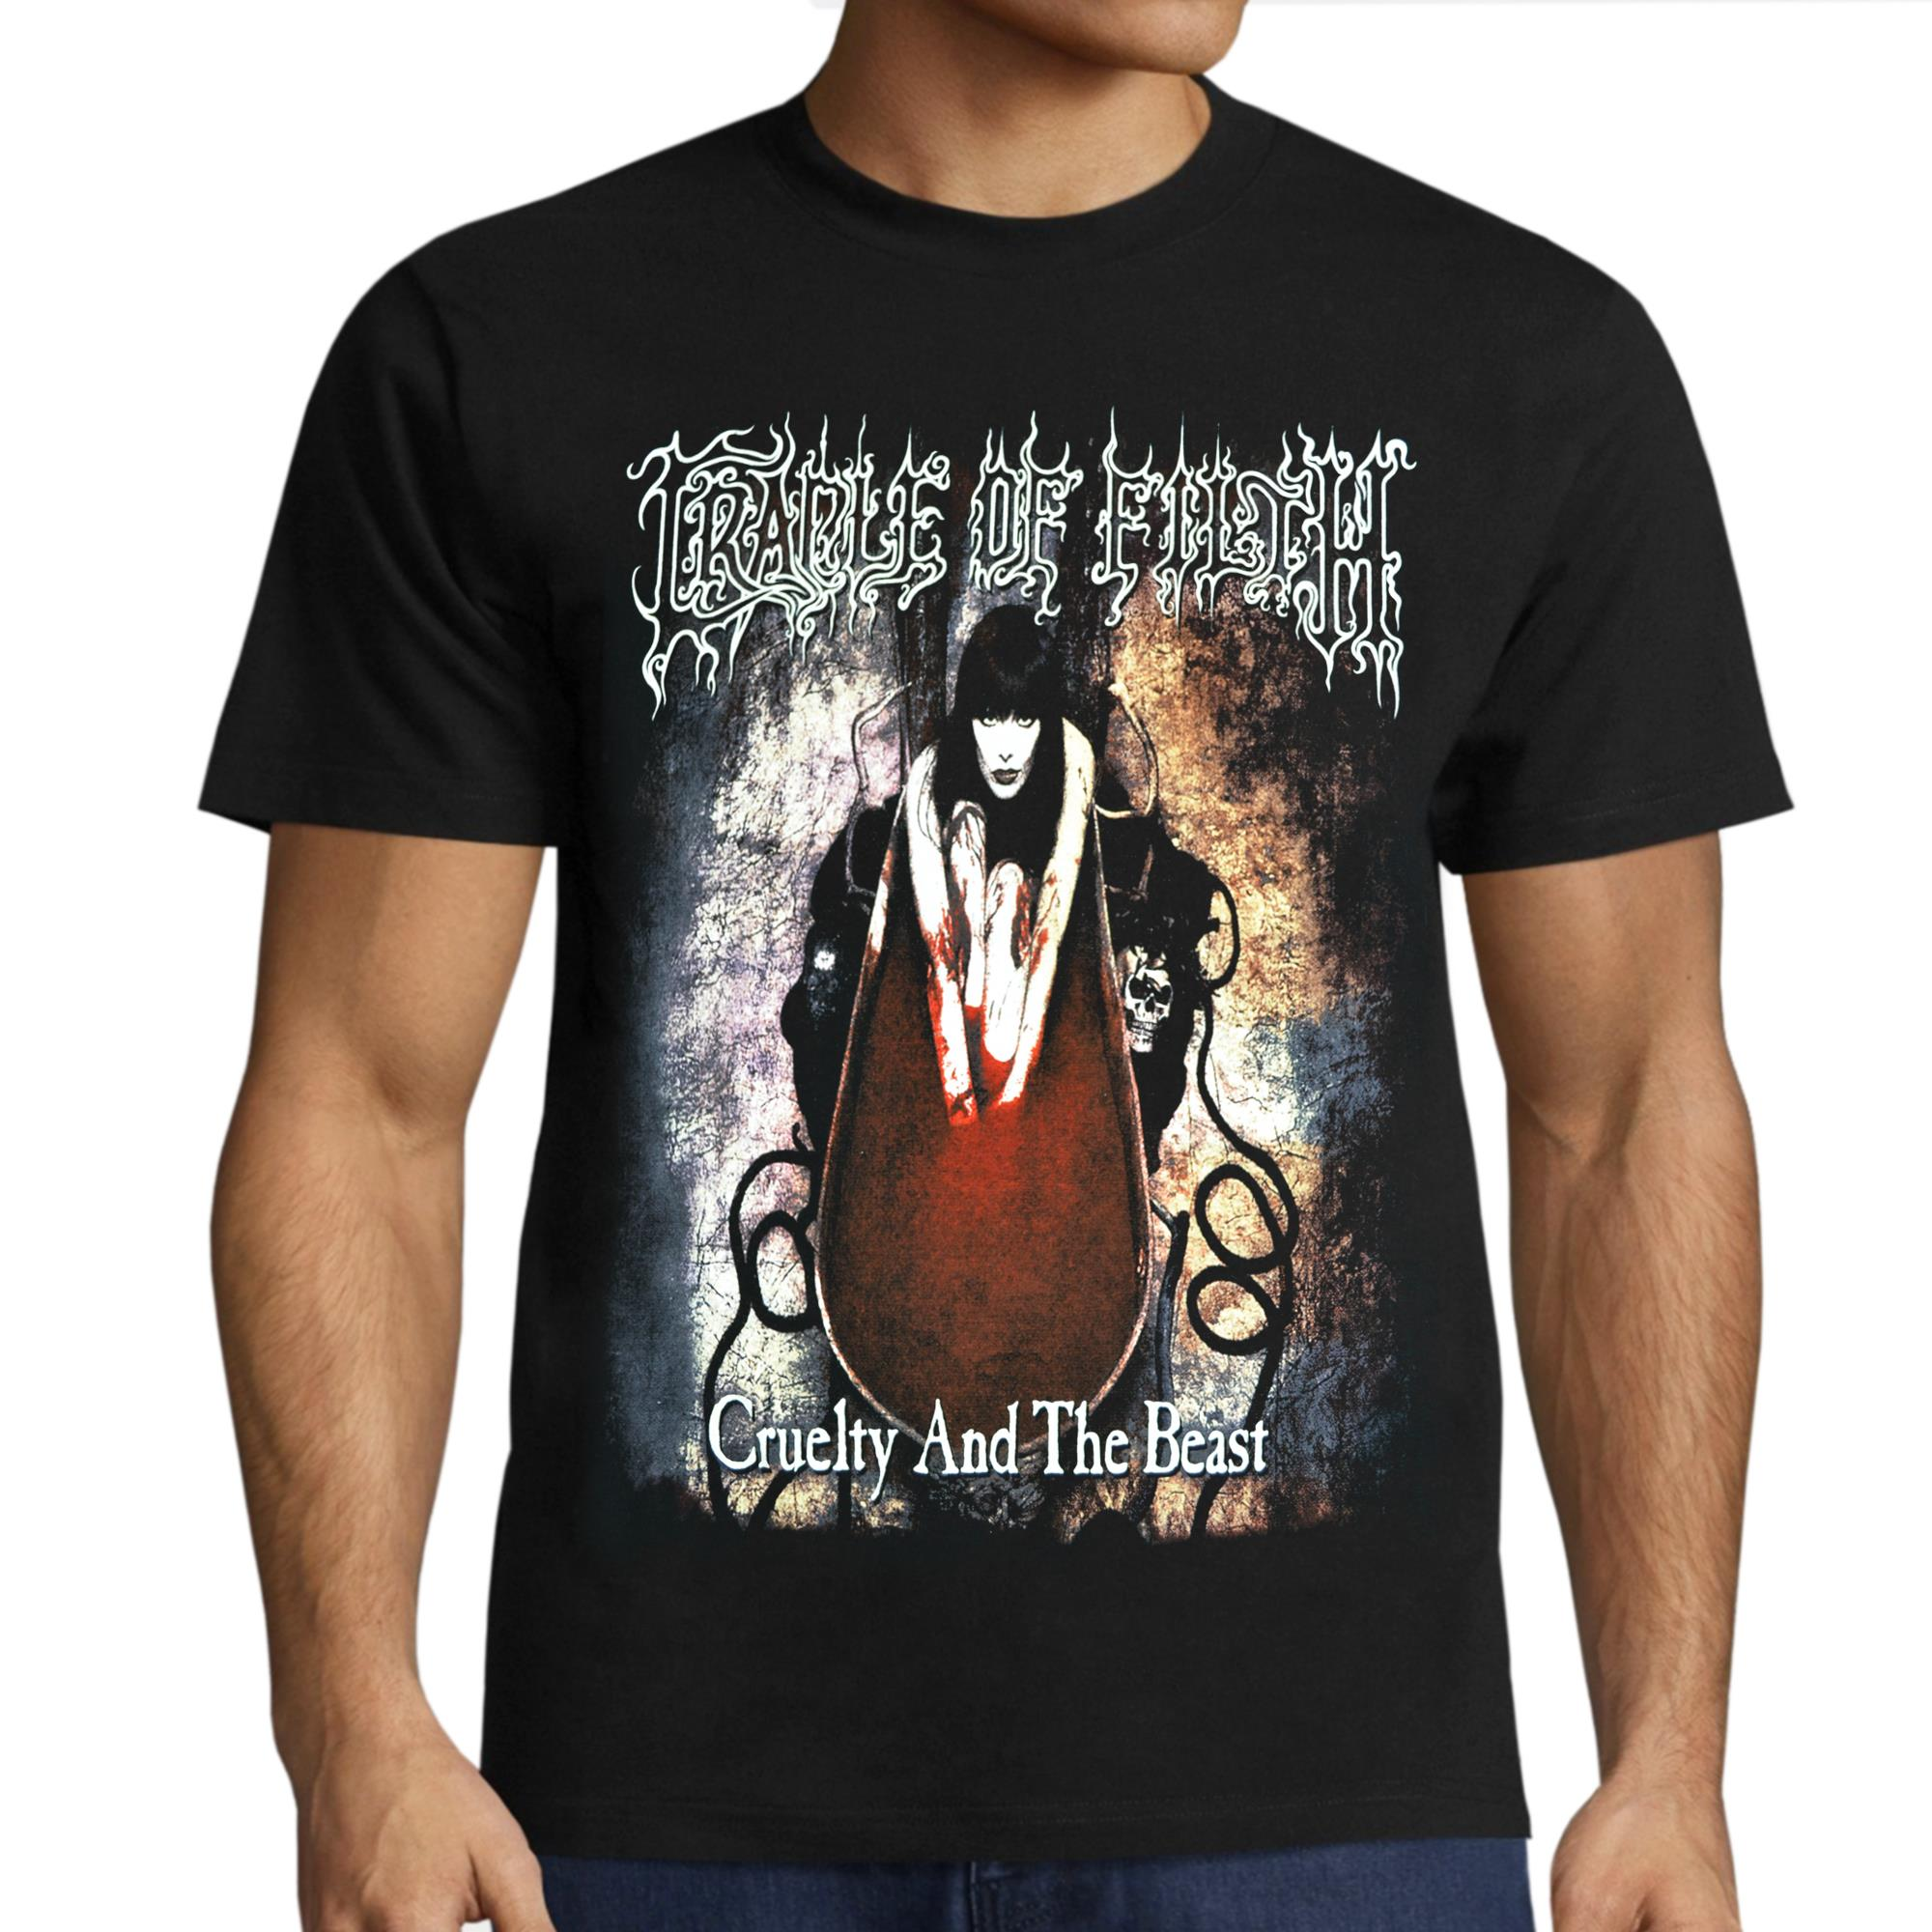 Cruelty And The Beast T-shirt